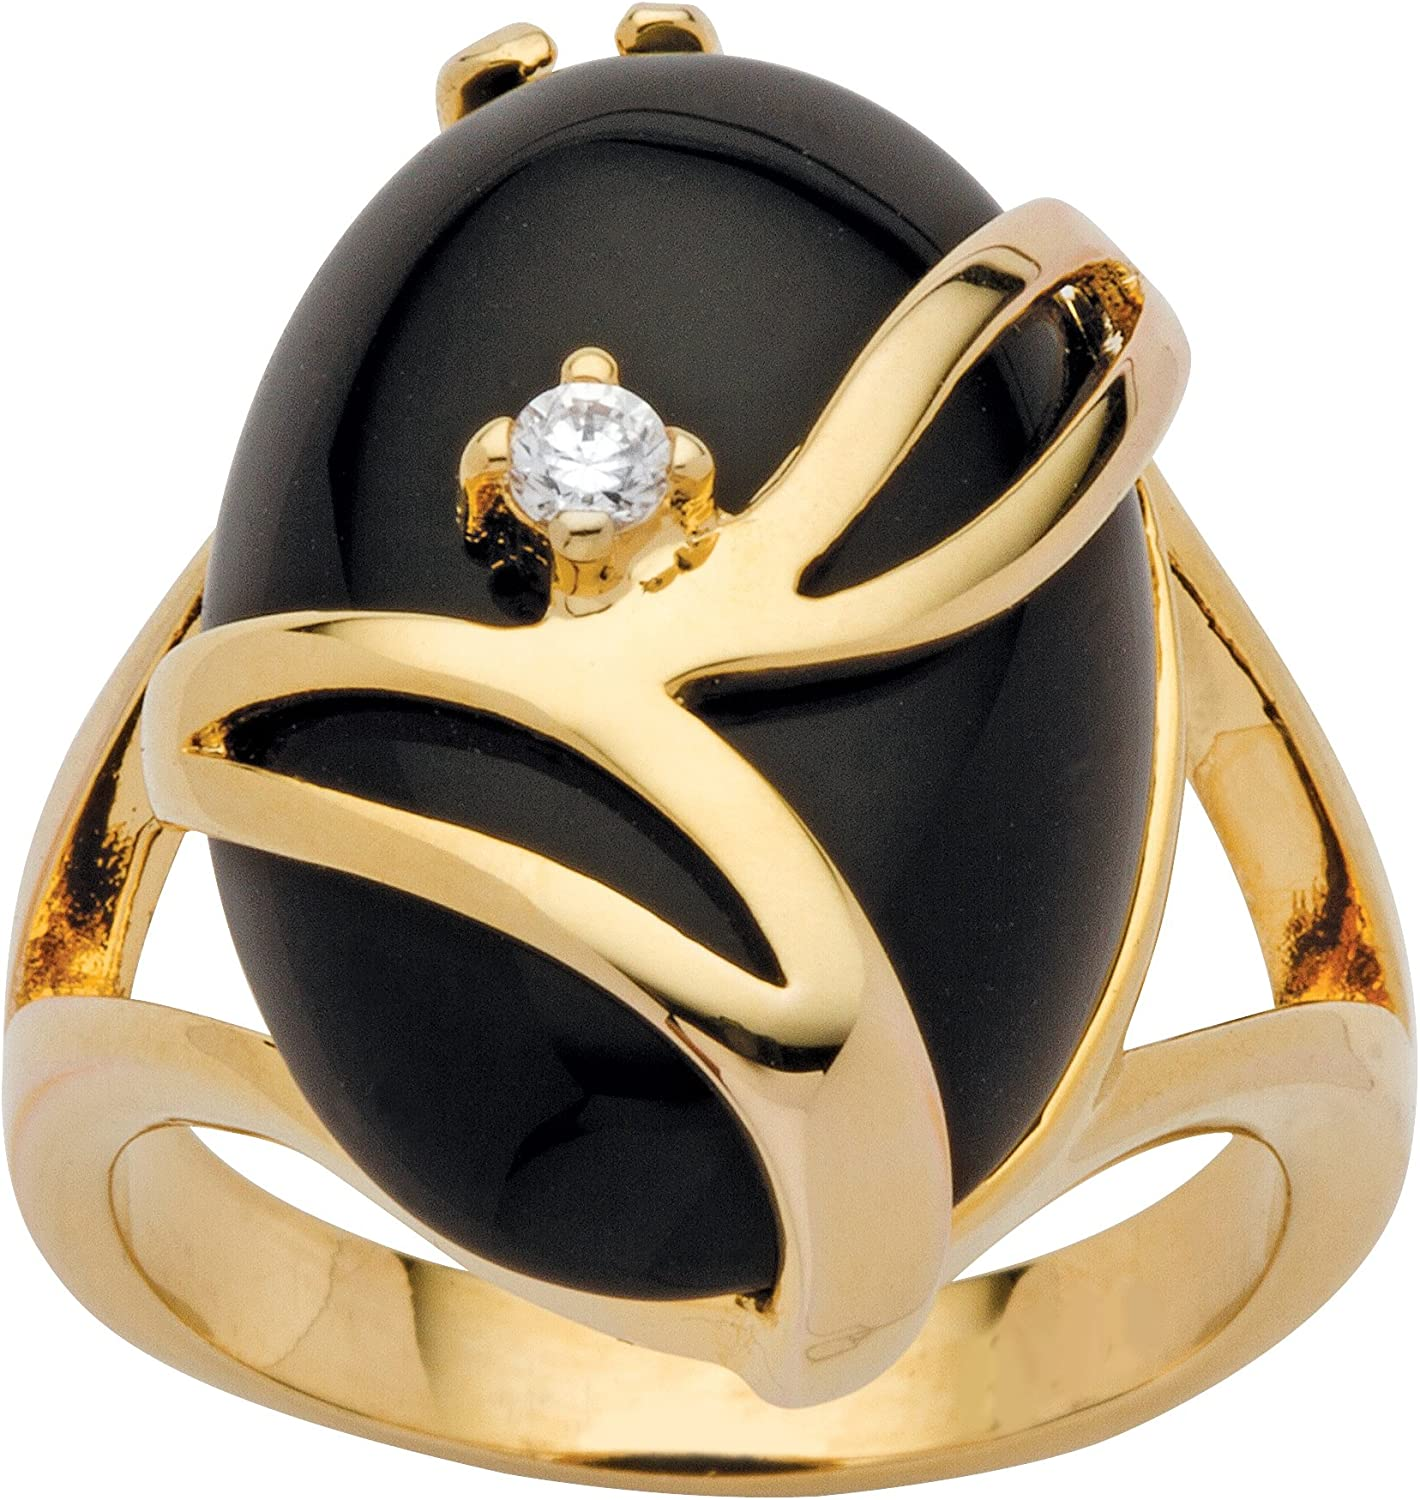 Palm Beach Jewelry Yellow Gold-Plated Oval Shaped Natural Black Onyx and Round Crystal Ring